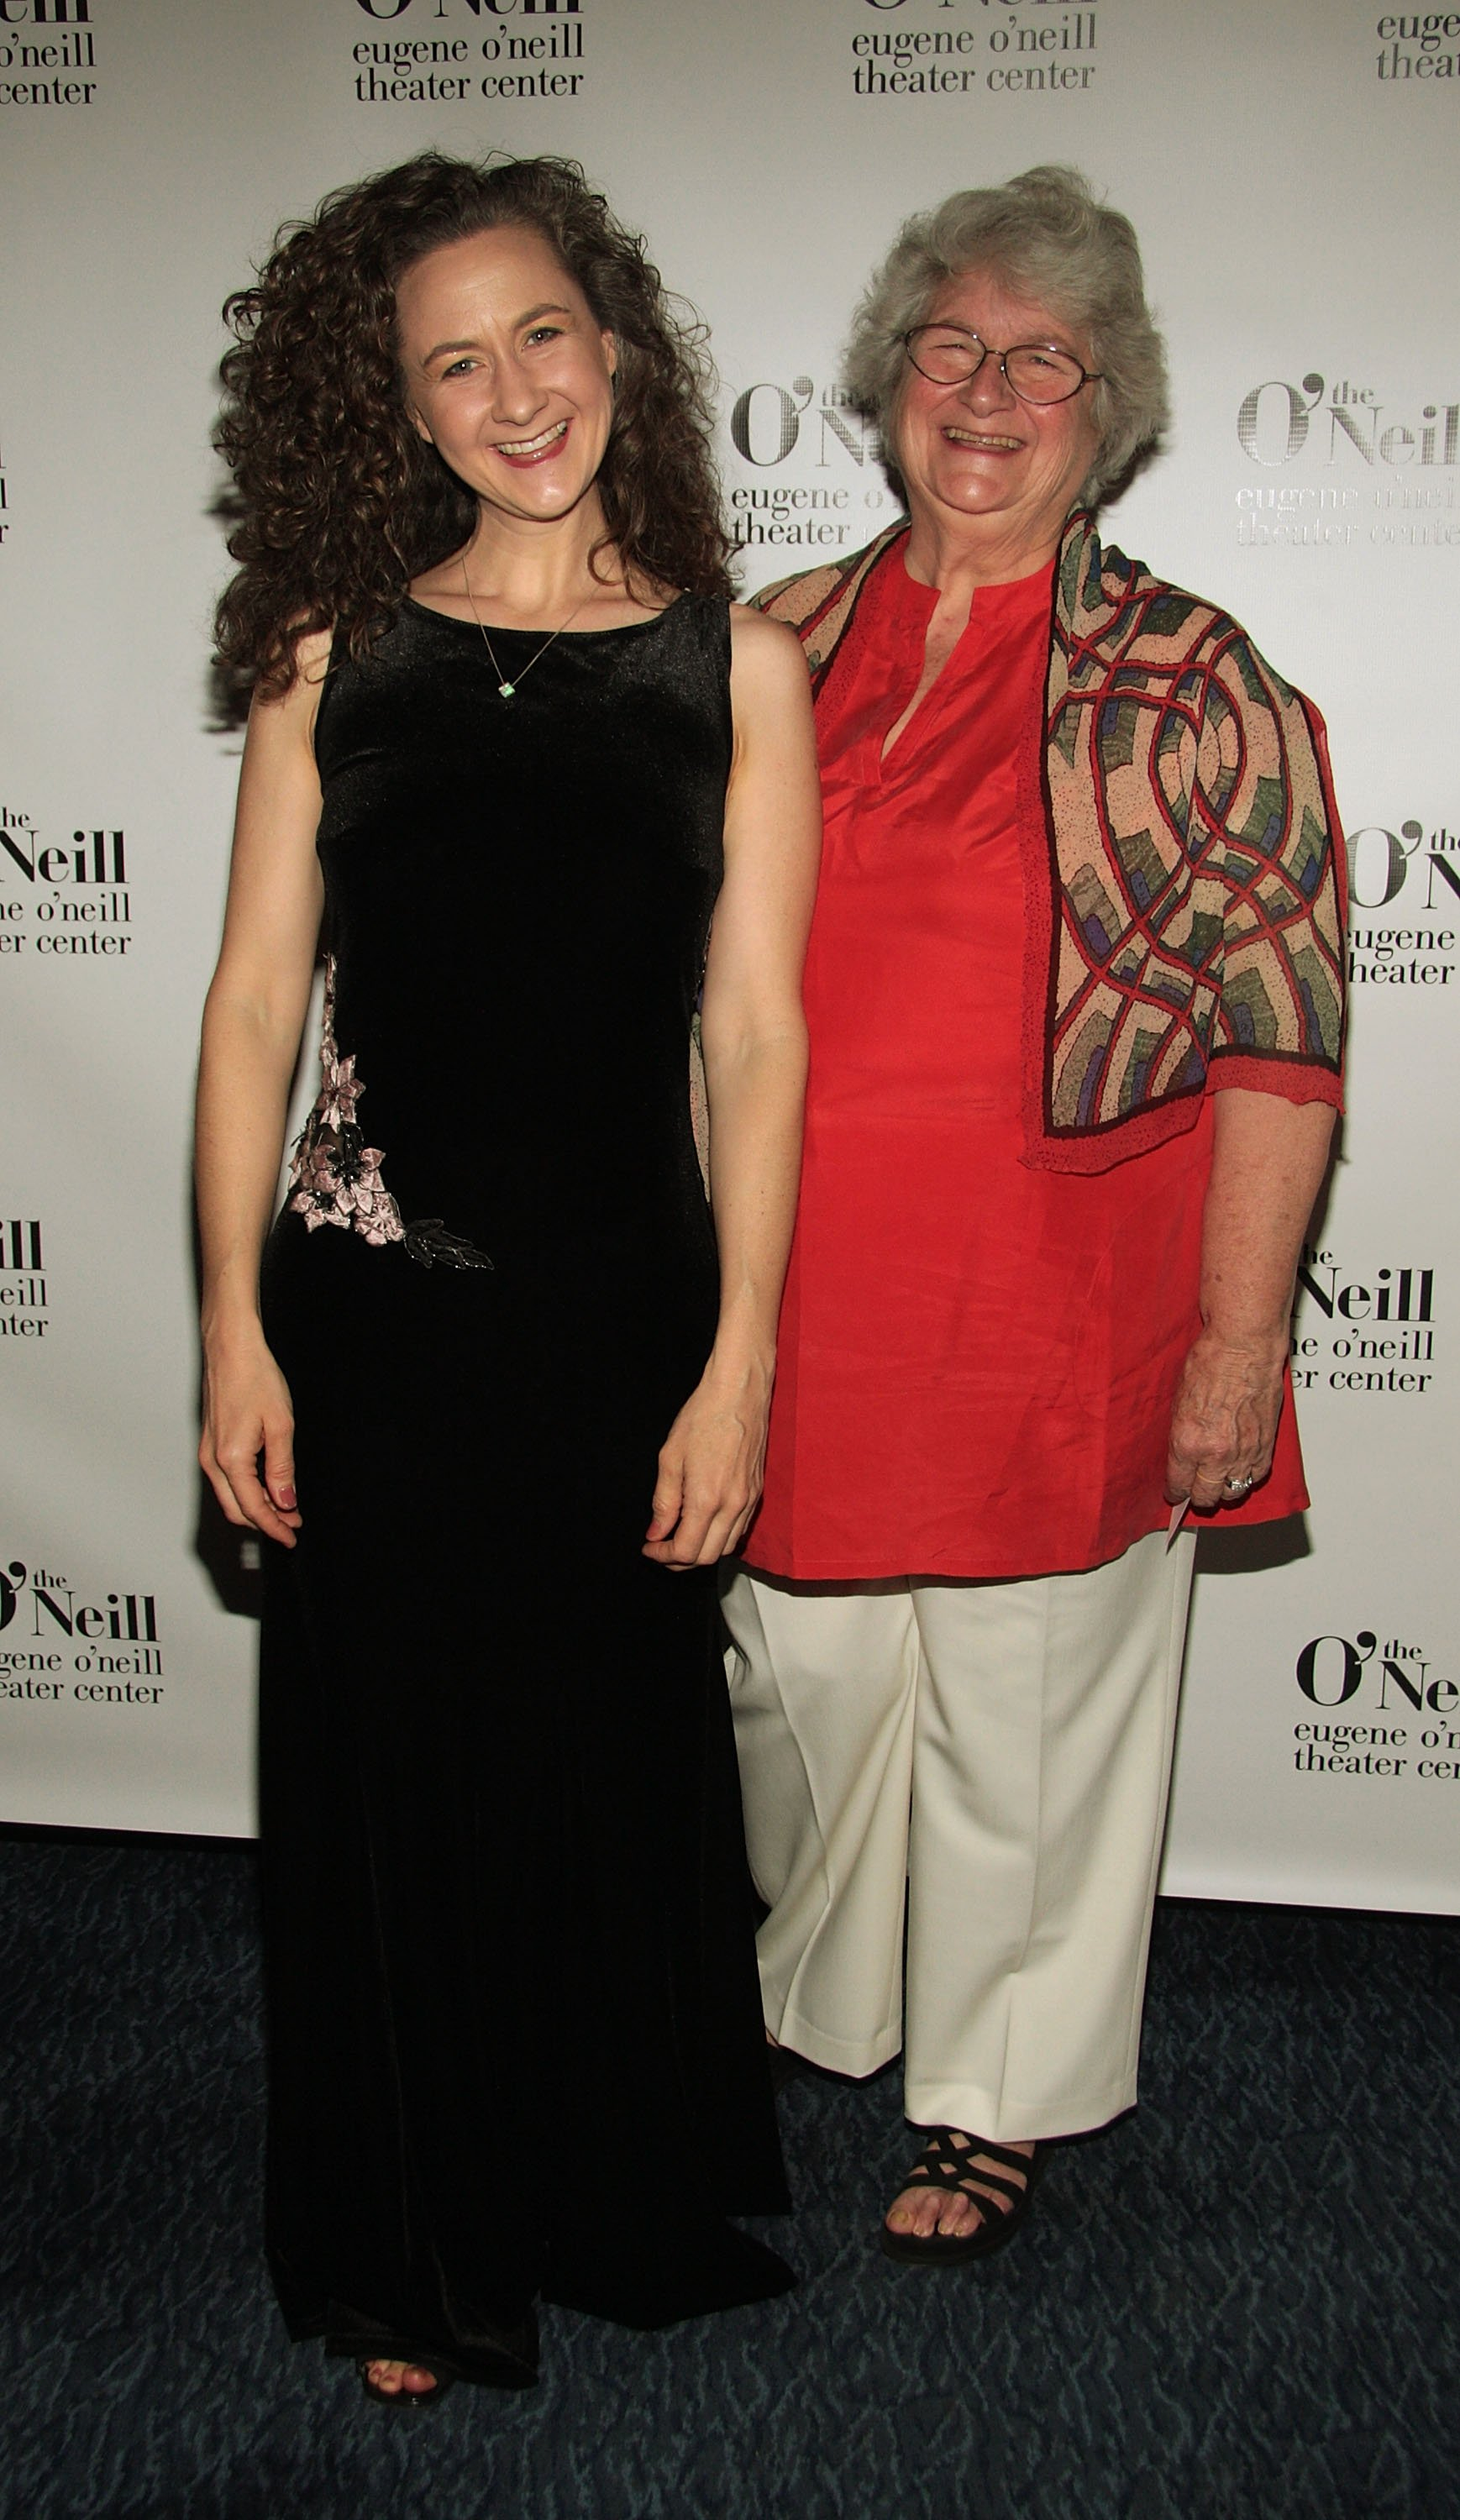 The late Jim Henson's daughter Heather Henson and wife Jane Henson attend the 2009 Monte Cristo awards at Bridgewaters on April 26, 2009 in New York City.   Source: Getty Images